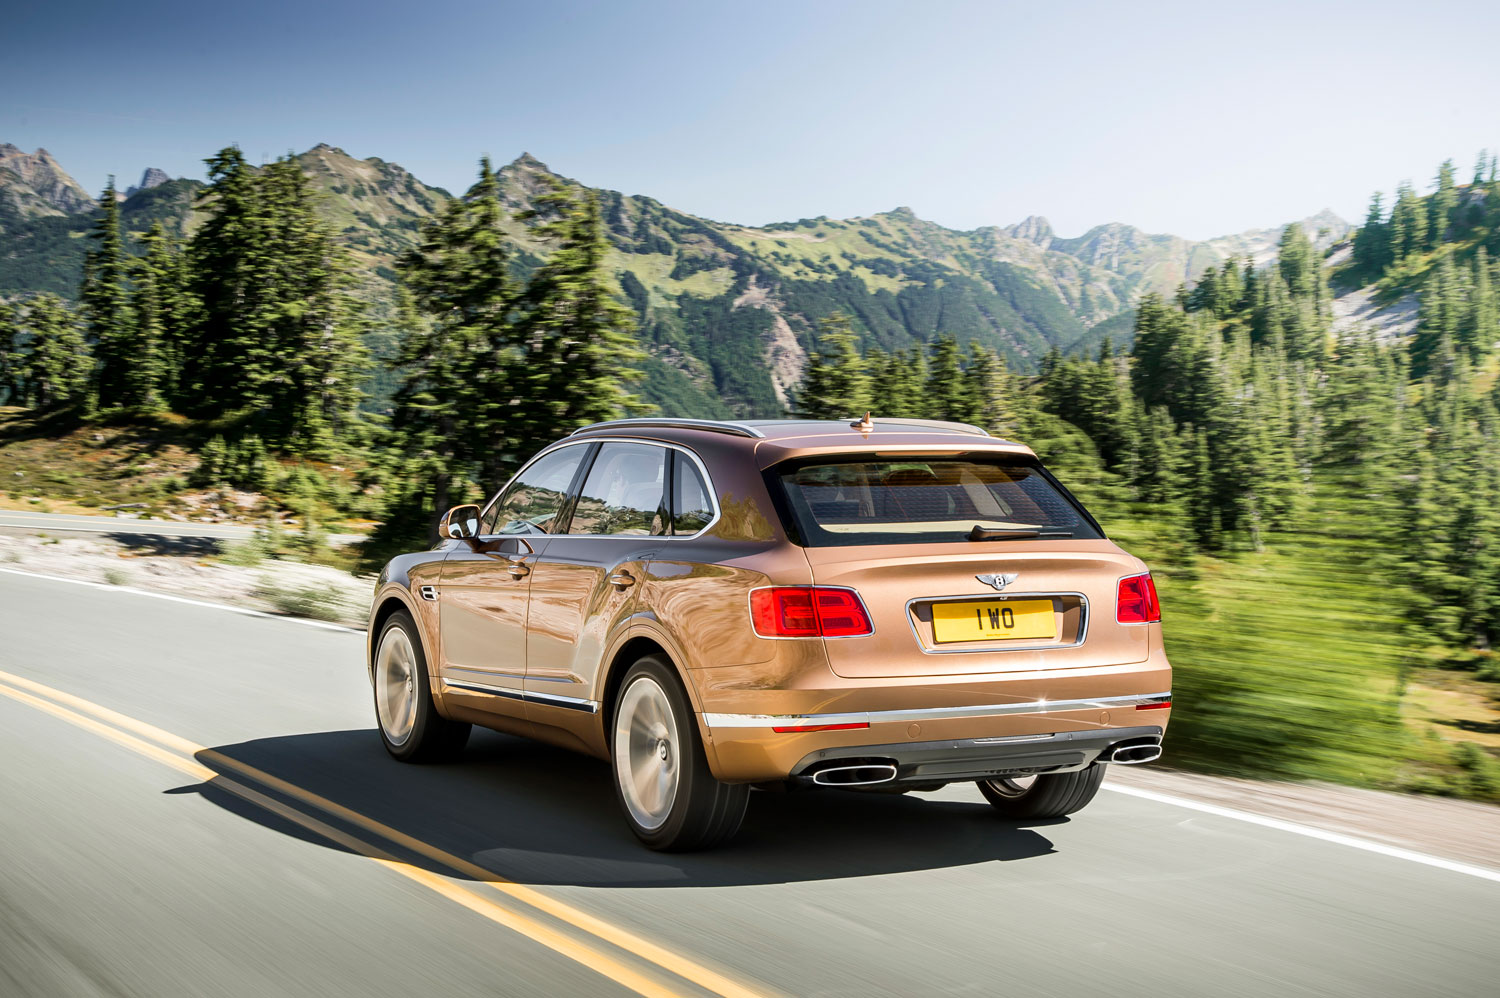 Off-road opulence for £160,000 in Bentley's first ever SUV, the Bentayga 2